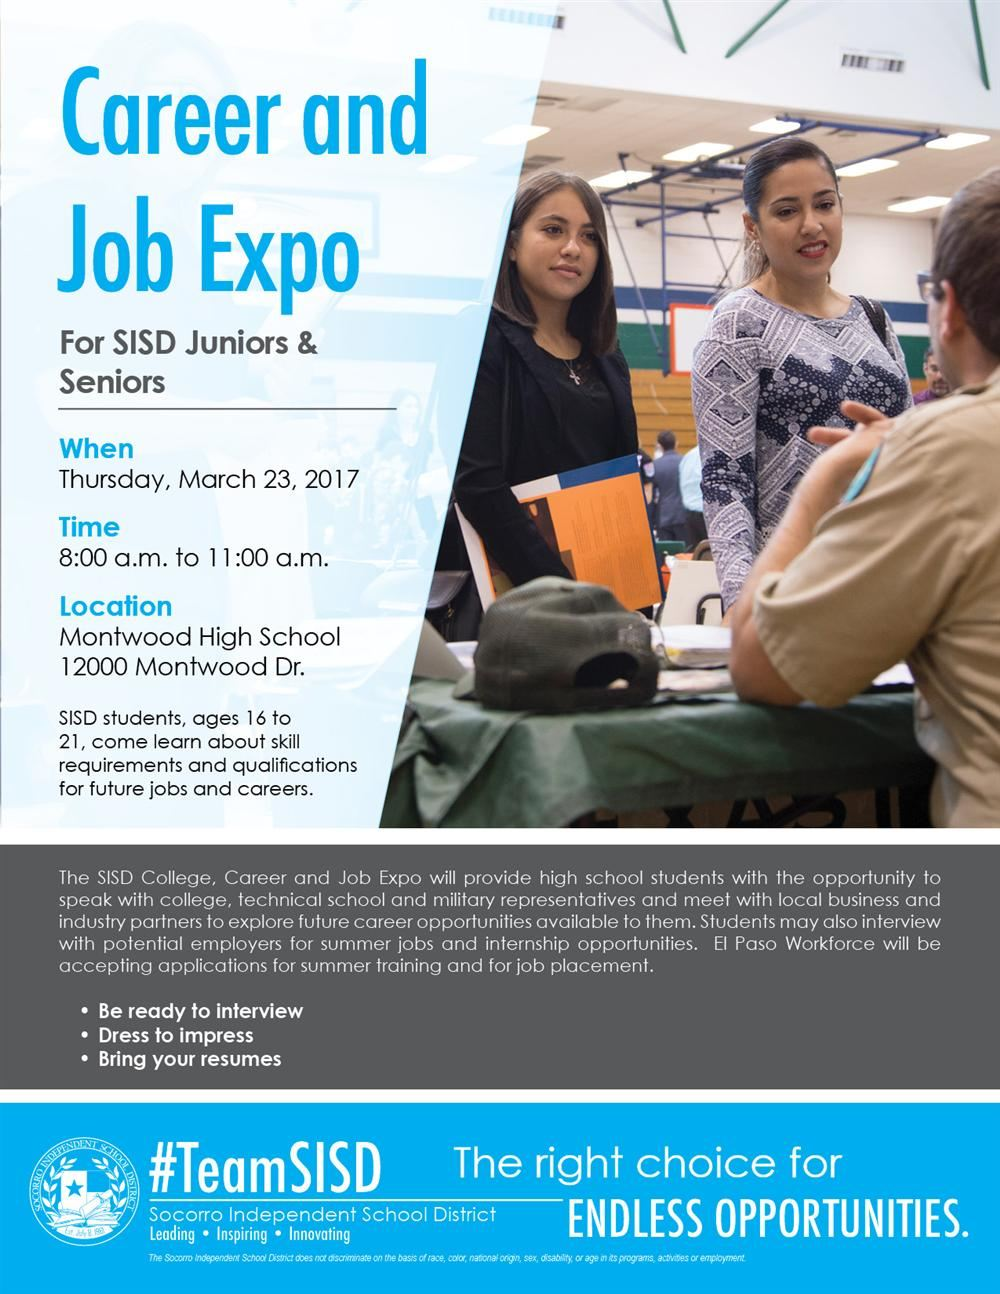 career and job expo flyer new jpg 2017 career and job expo flyer new